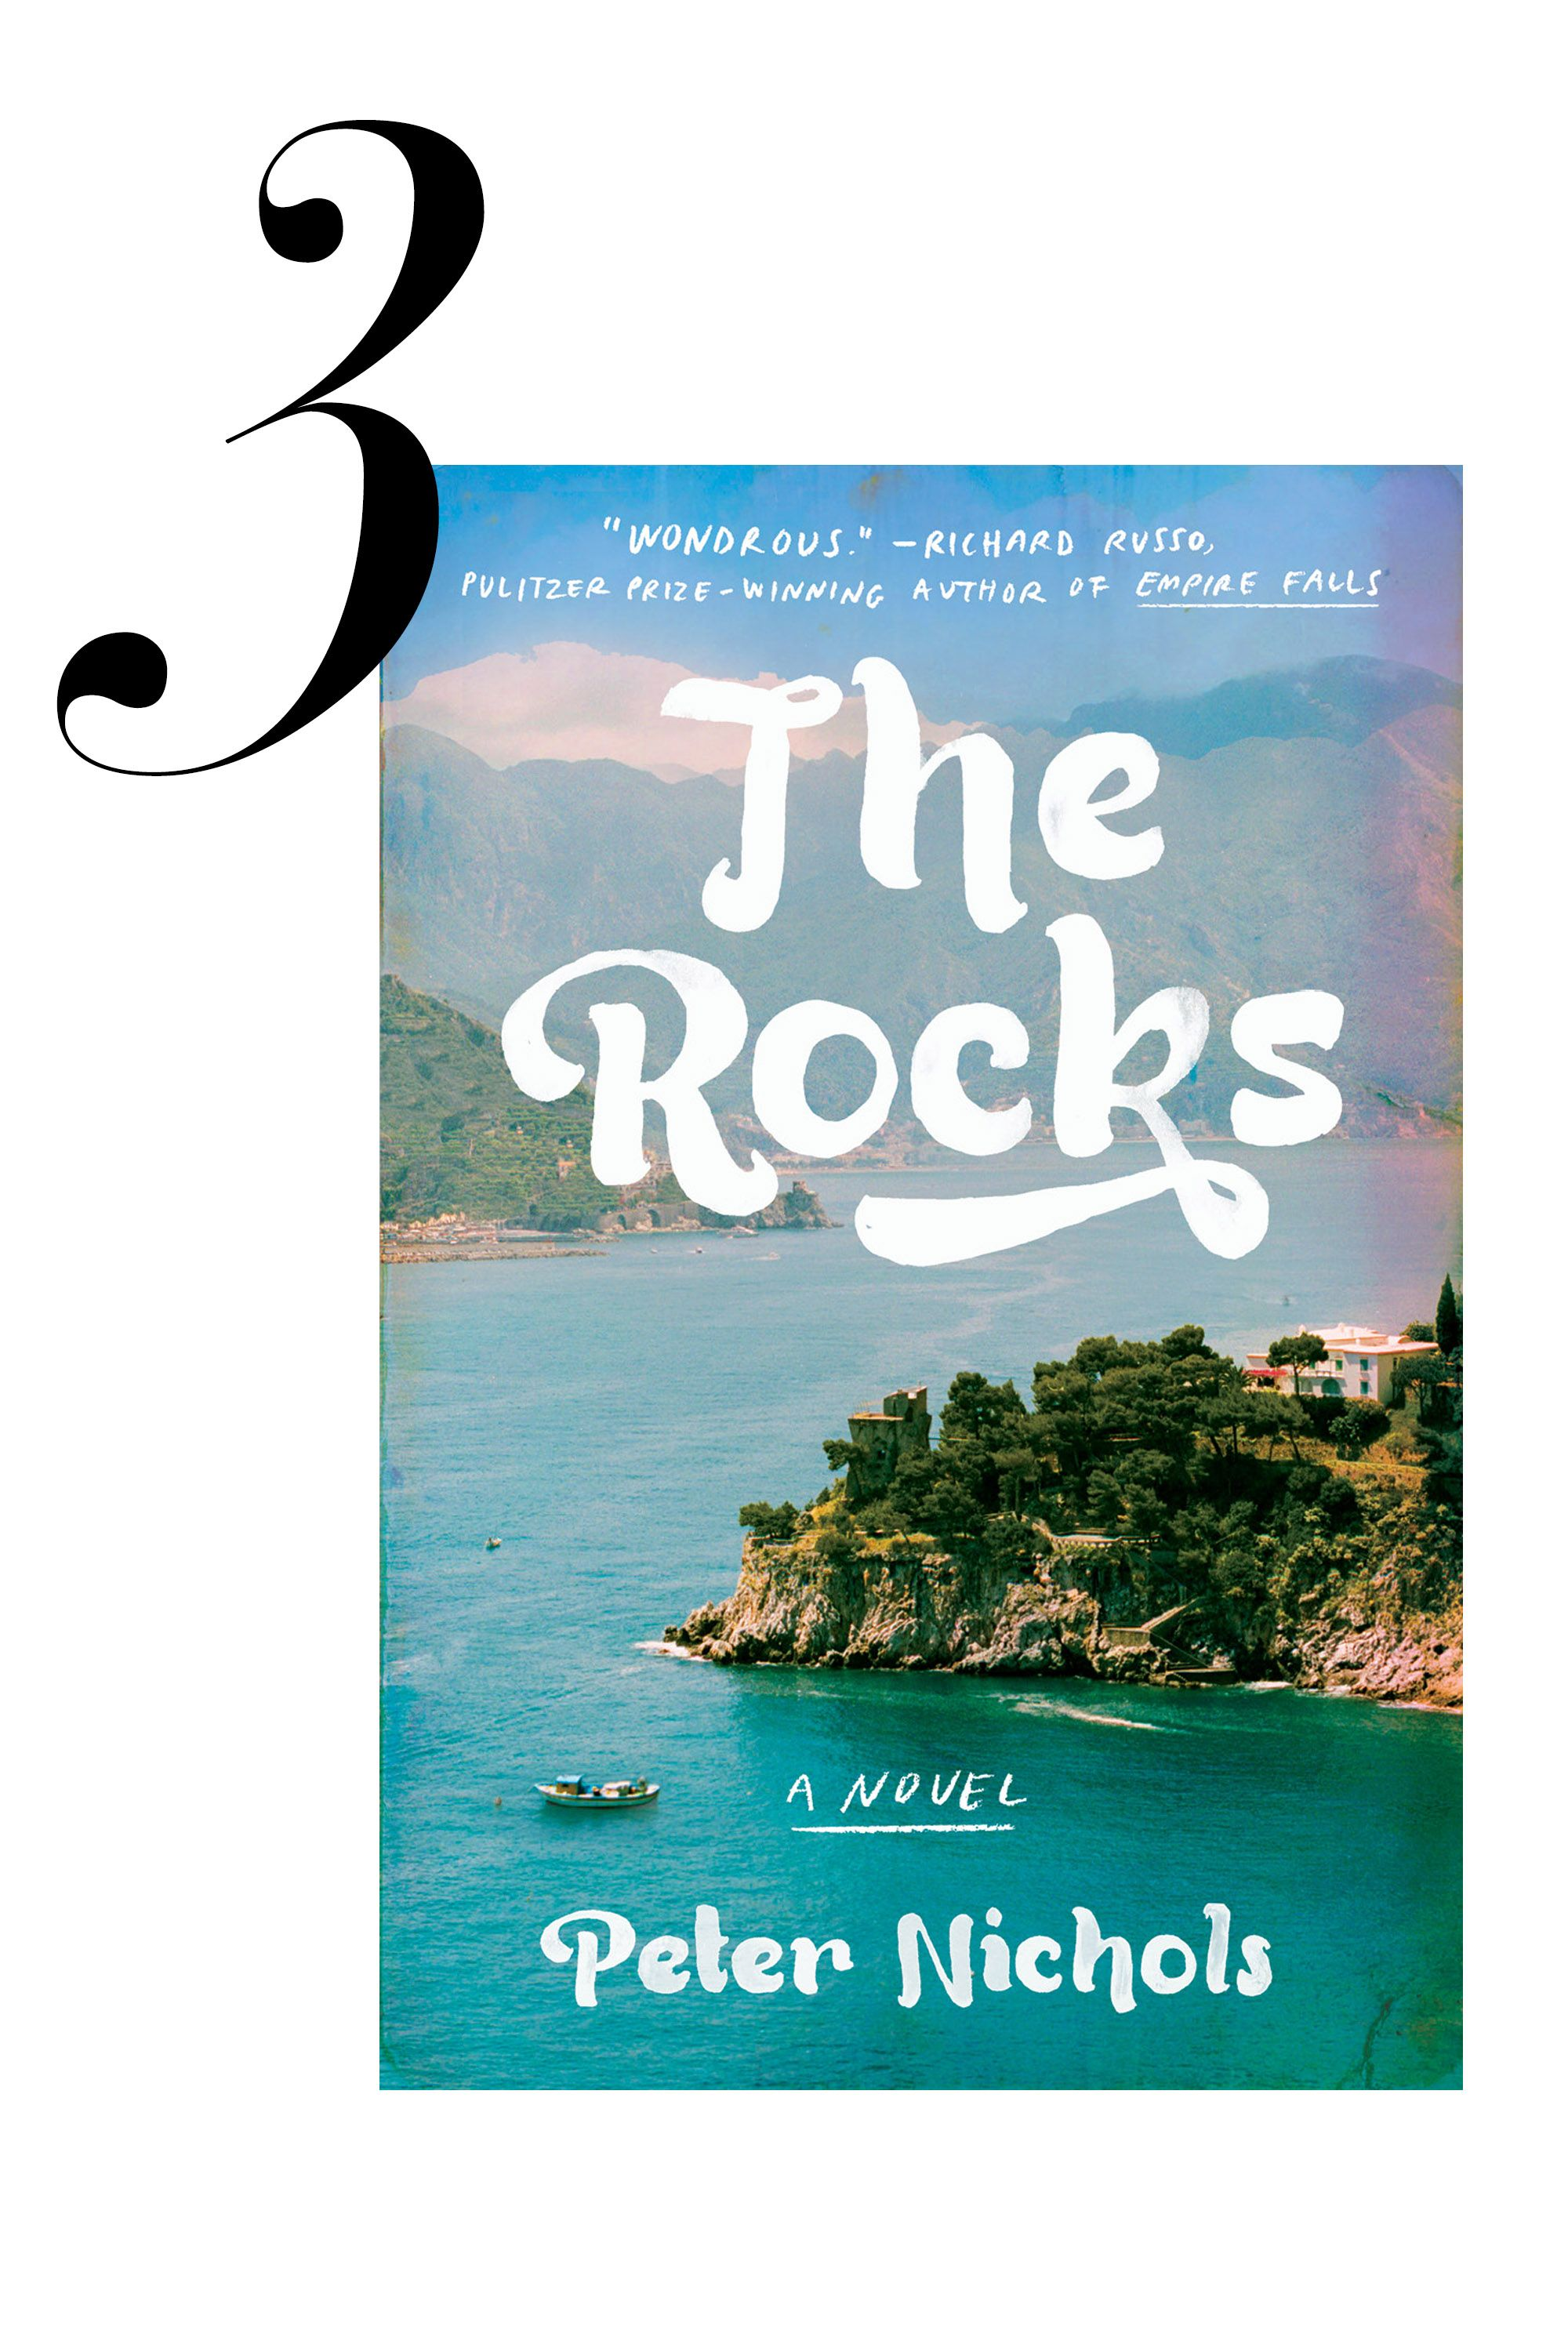 "Loosely based on his own memories of Mediterranean summers in Mallorca, Hollywood screenwriter Peter Nichols's novel <a target=""_blank"" href=""http://www.amazon.com/Rocks-Novel-Peter-Nichols/dp/1594633312/ref=sr_1_1?s=books&amp&#x3B;ie=UTF8&amp&#x3B;qid=1427318530&amp&#x3B;sr=1-1&amp&#x3B;keywords=THE+ROCKS+by+Peter+Nichols""><em>The Rocks</em></a> is a double love story told in reverse. This page-turner will transport readers to the sunny community of expats at a glamorous seaside resort, where mystery, love, and family legacy are all fiercely intertwined. 